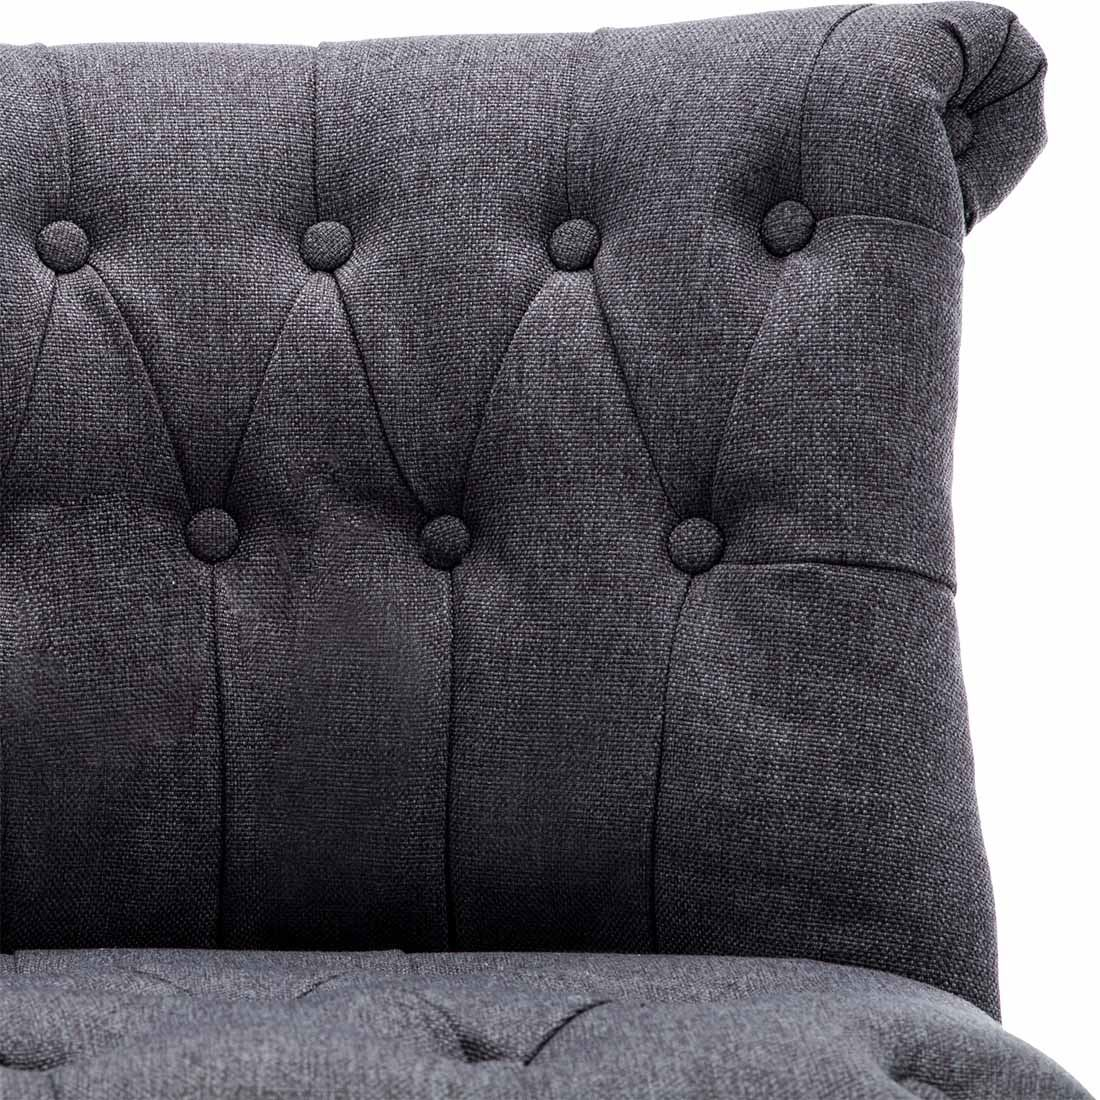 Keela-Velvet-Linen-Button-Back-Occasional-Accent-Bedroom-Lounge-Chair-Tub-Fabric thumbnail 8